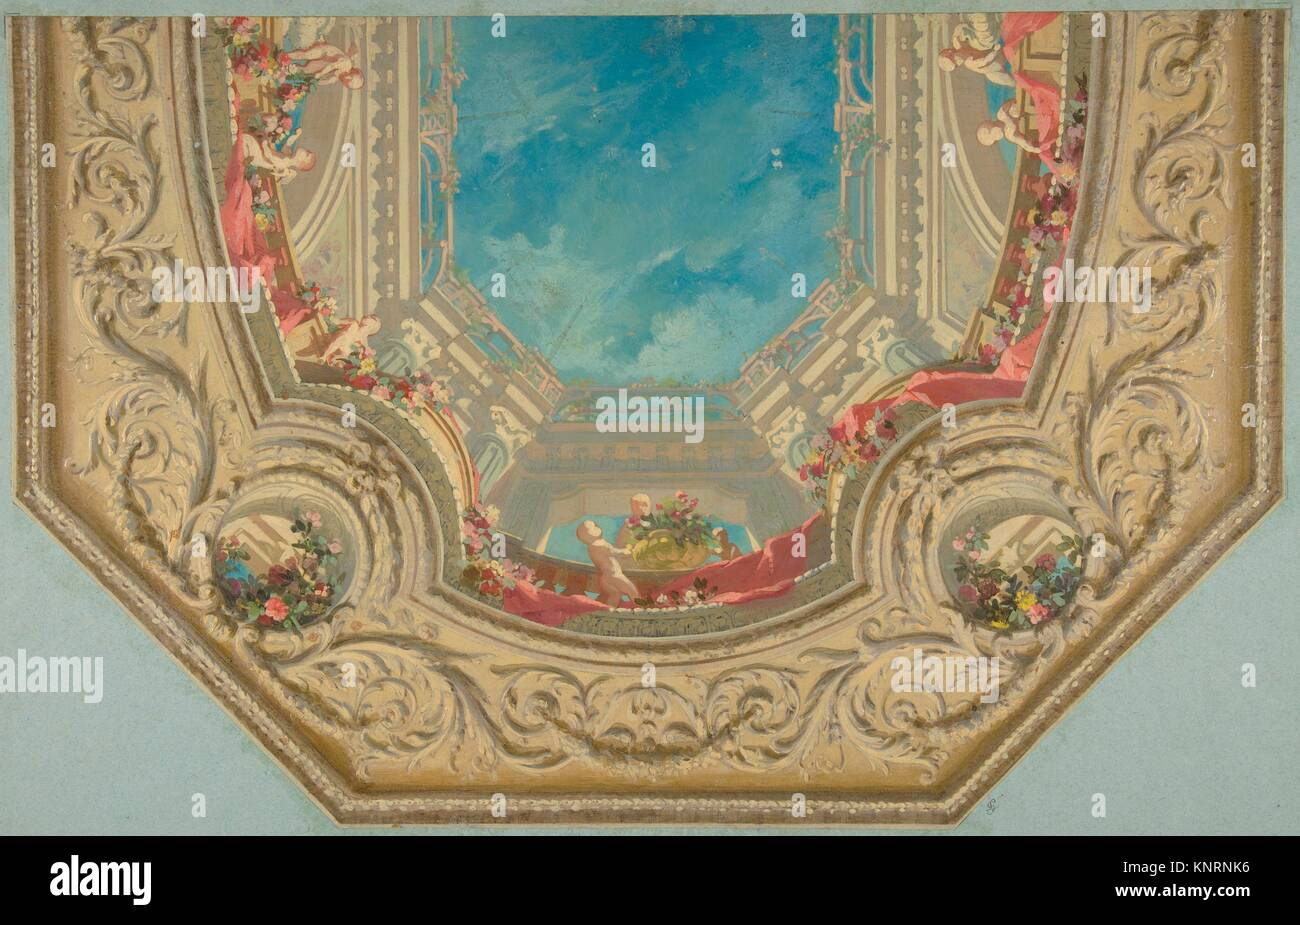 Design for Octagonal Ceiling in the Pless House, Berlin. Artist: Jules-Edmond-Charles Lachaise (French, died 1897); - Stock Image